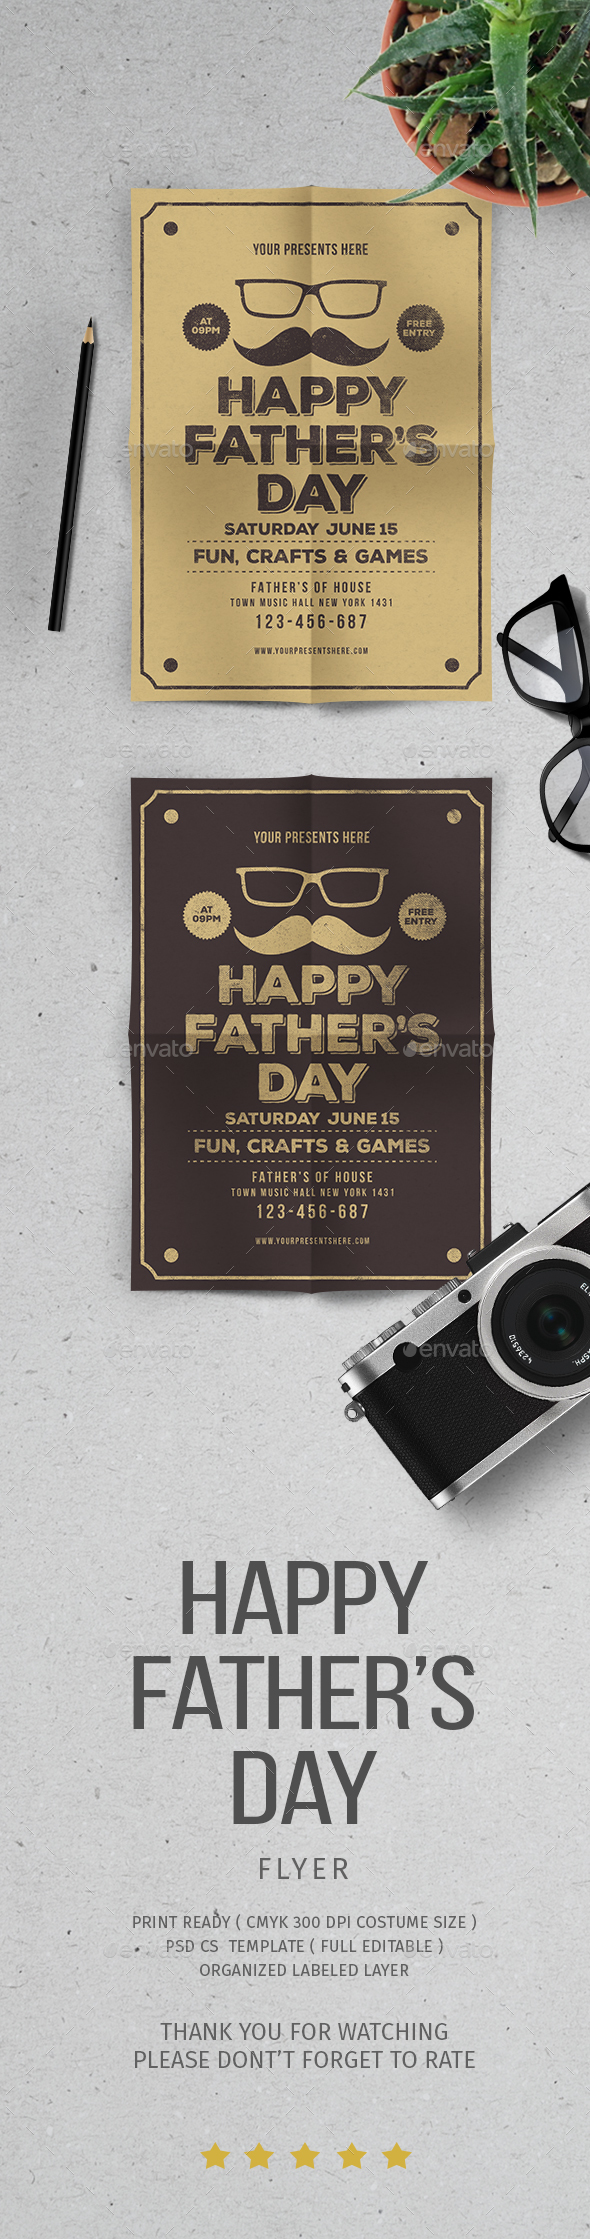 Father's Day Flyer - Flyers Print Templates